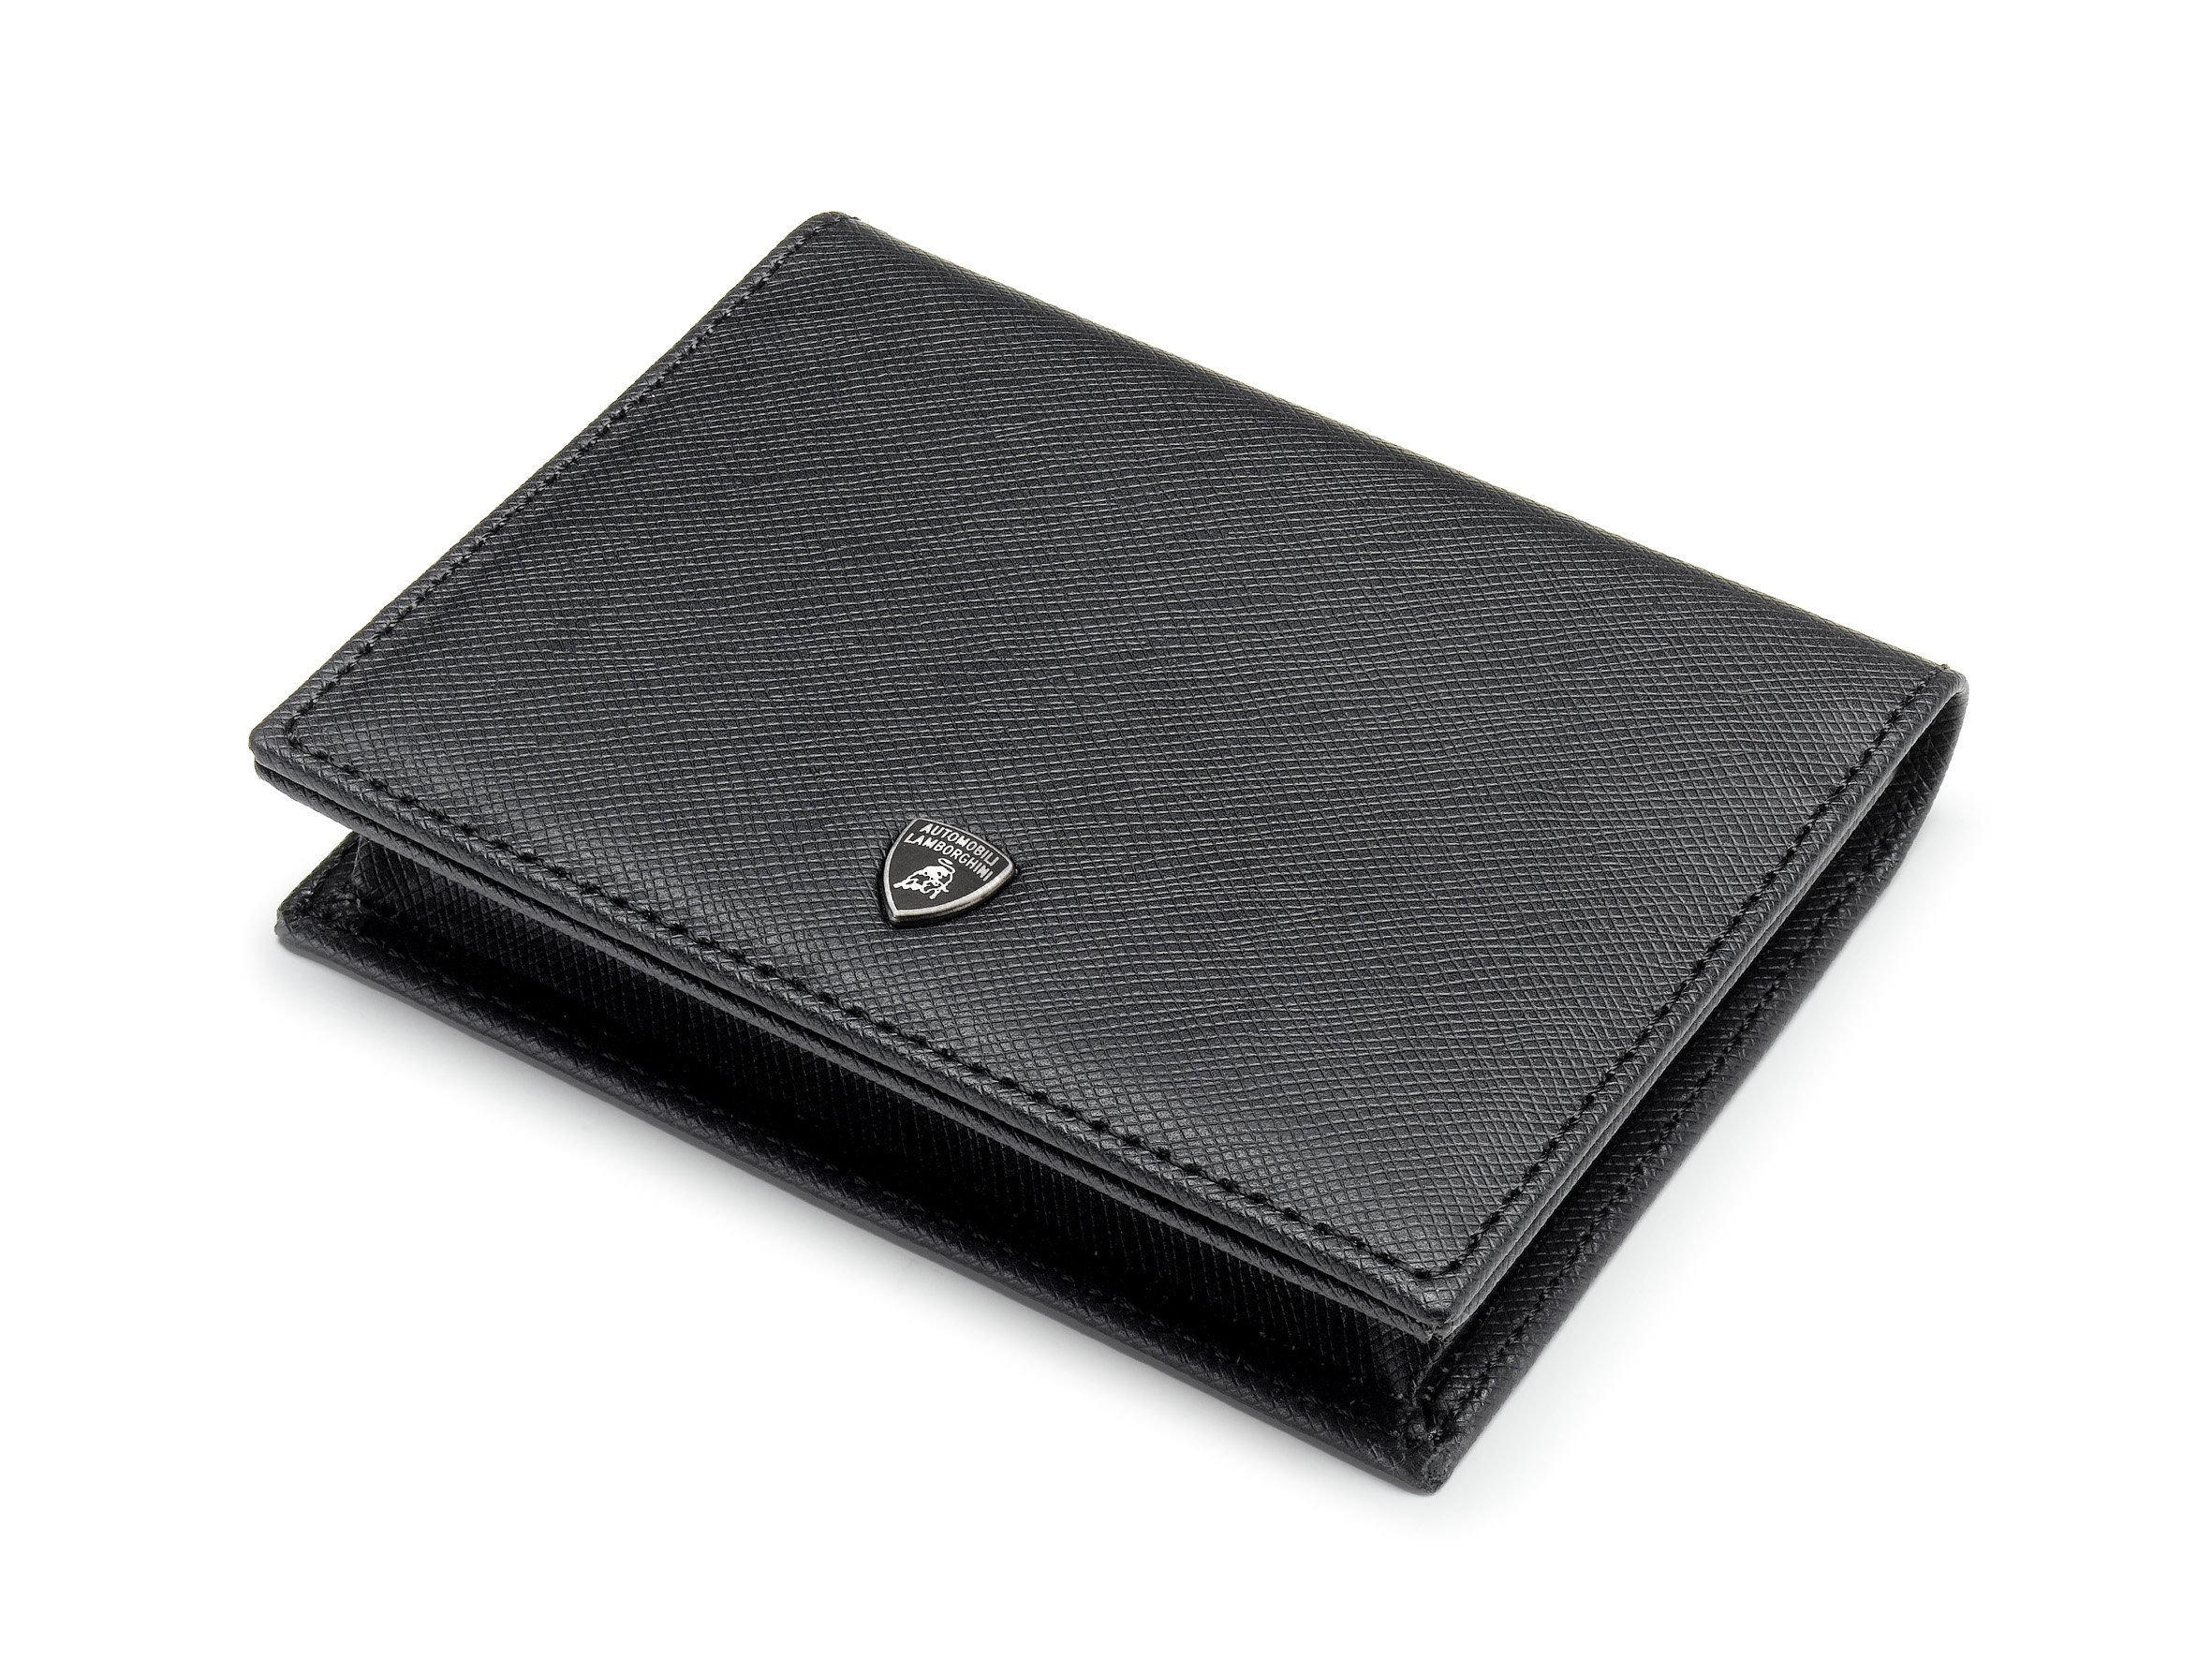 Automobili Lamborghini Accessories Classic Business Card Holder One Size Black by Automobili Lamborghini (Image #1)